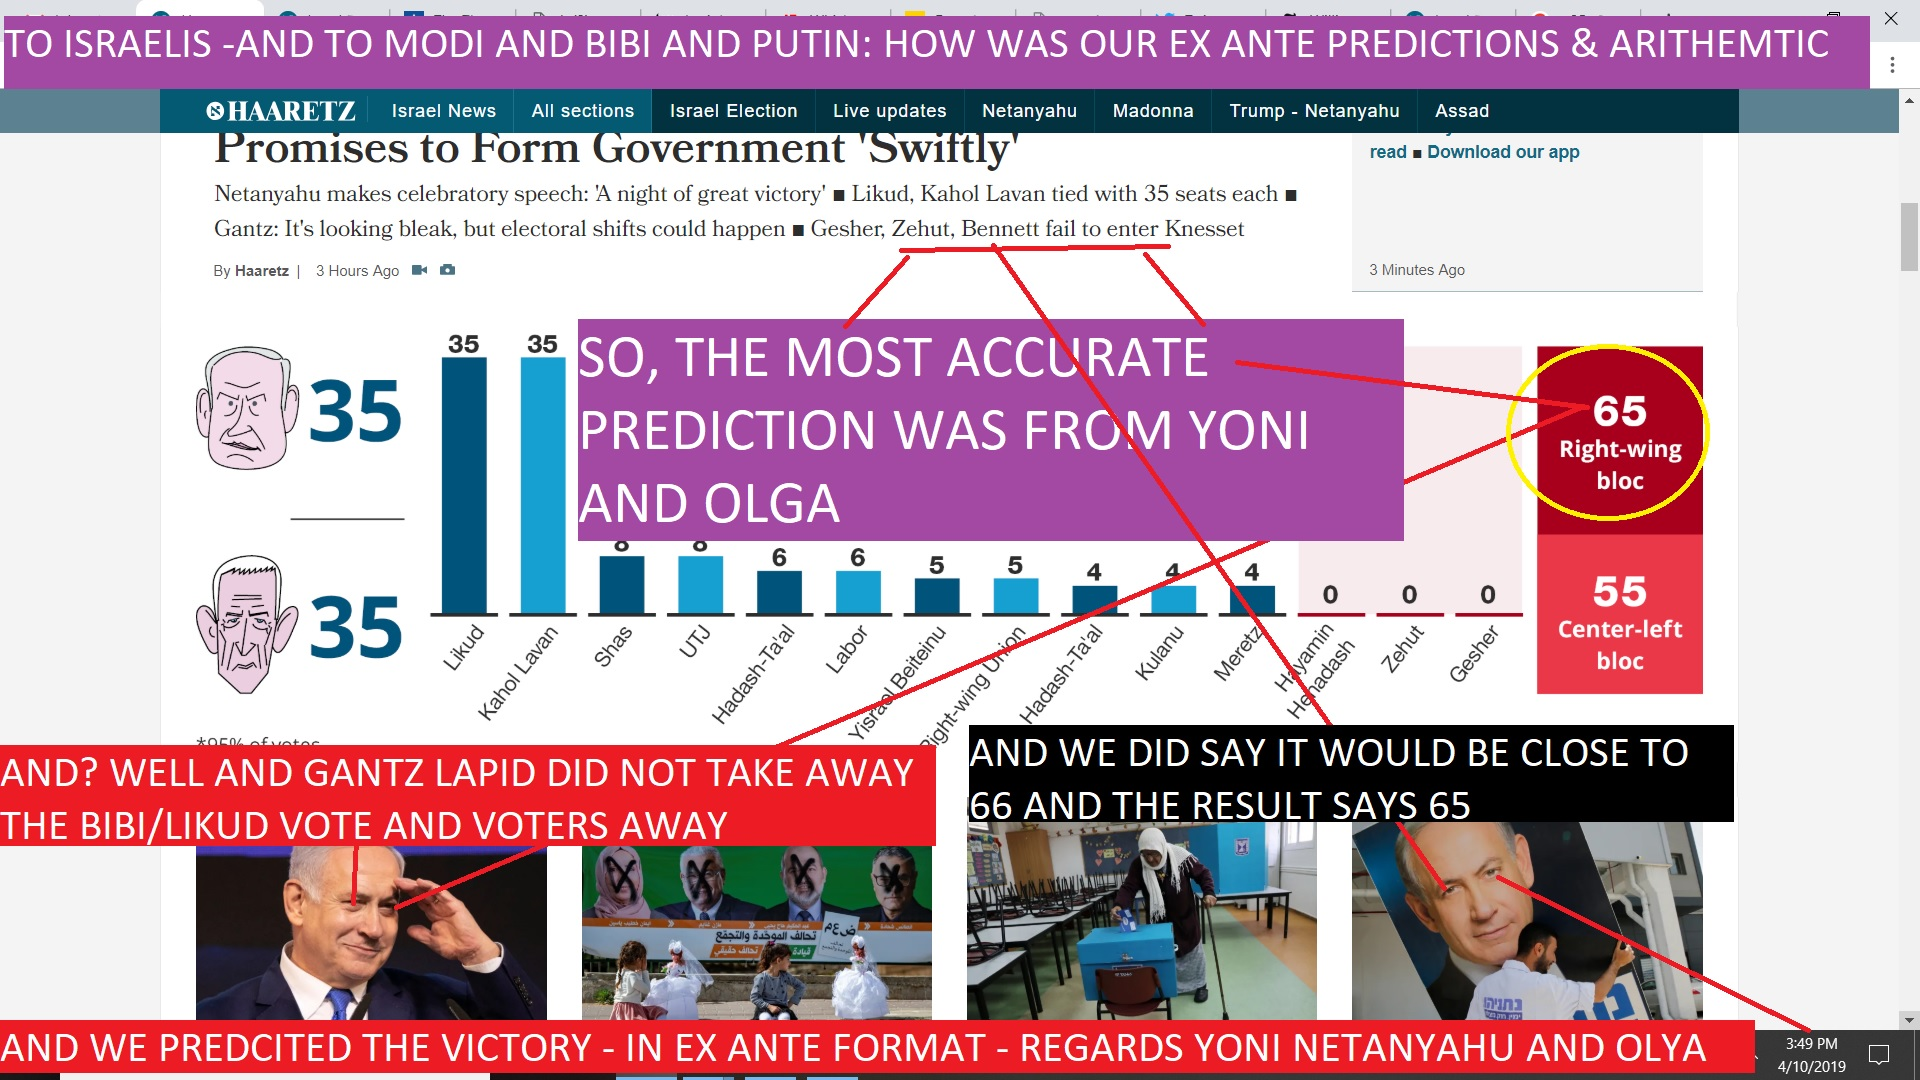 SUMMARY OF ISRAELI ELECTIONS FROM OLGA SHULMAN LEDNICHENKO AND YONI NETANYAHU - SO, WE PREDICTED THE RESULTS - BIBI WON. AND WE PREDIECTED THE NUMBERS - 66 WAS OUR BIBI GOT 65 - AND WE PREDIECTED OTHERS SEE ATTACHED